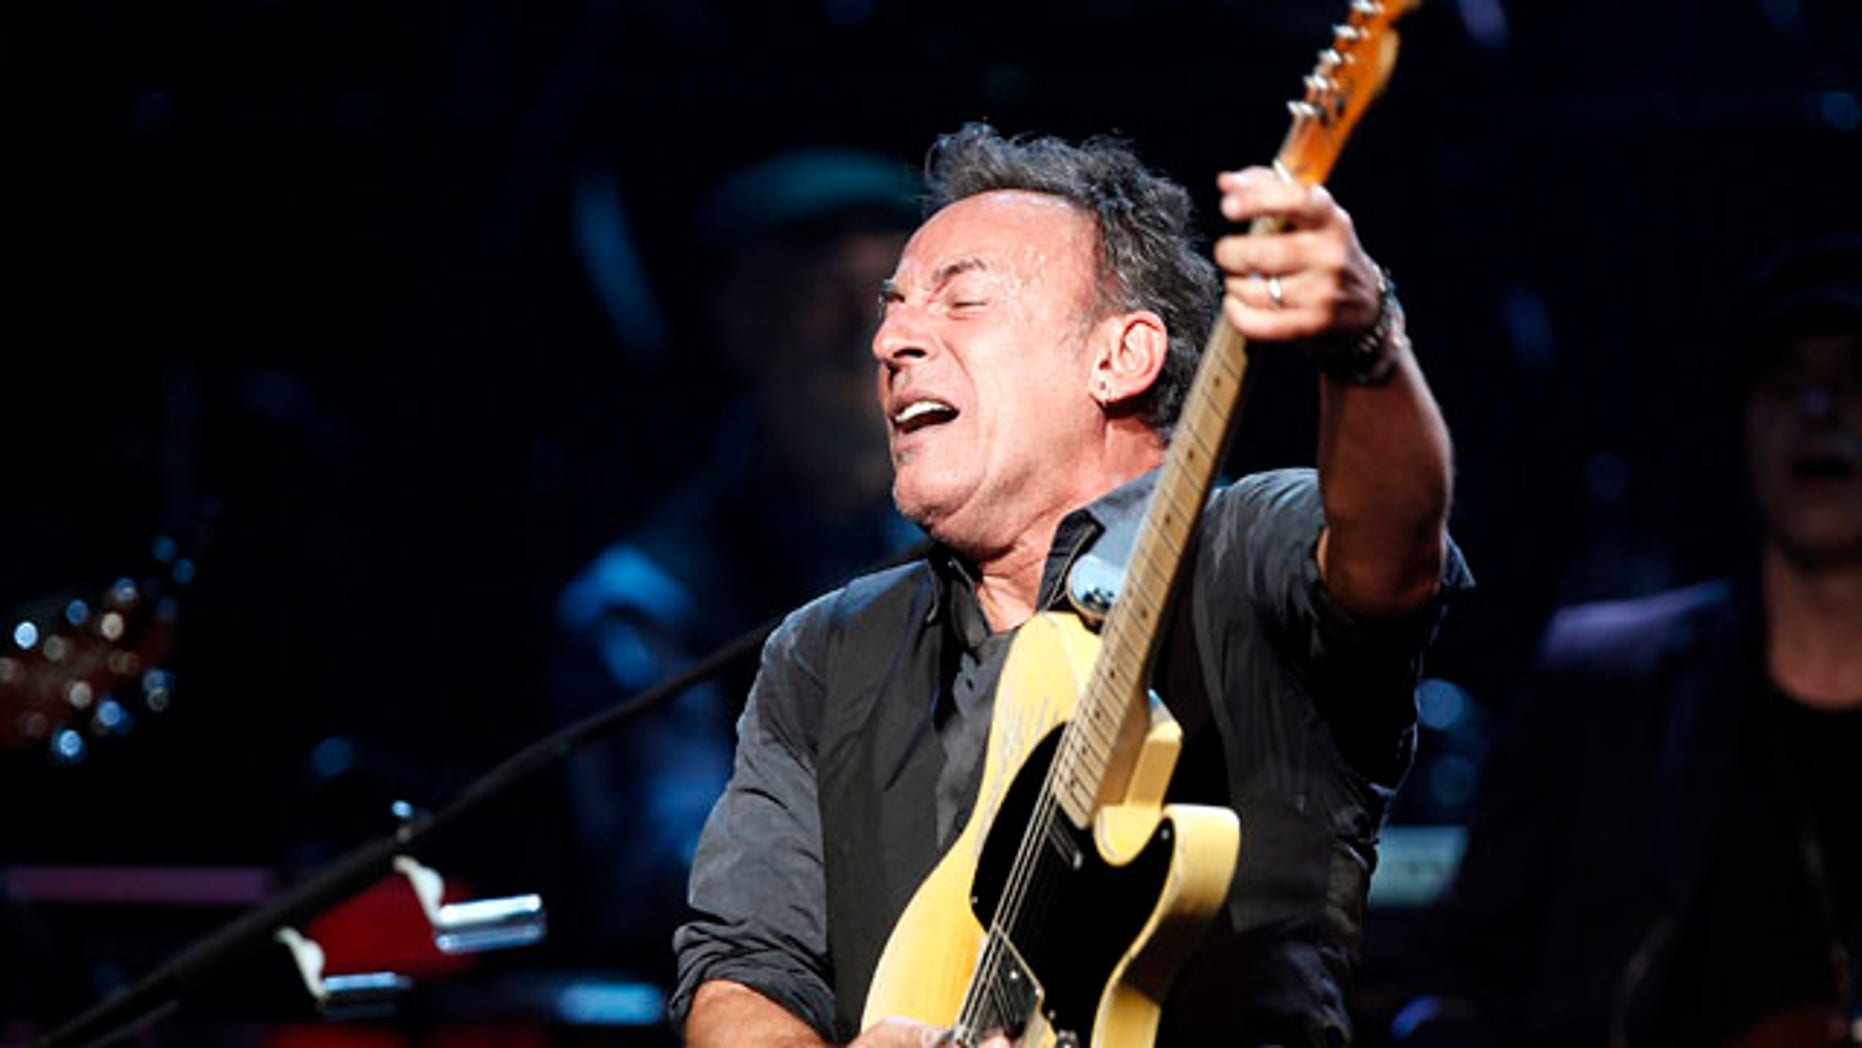 Bruce Springsteen and the E Street Band perform onstage during SiriusXM's 10th anniversary celebration at the Apollo Theater in Harlem, New York March 9, 2012.      REUTERS/Carlo Allegri (UNITED STATES - Tags: ENTERTAINMENT)